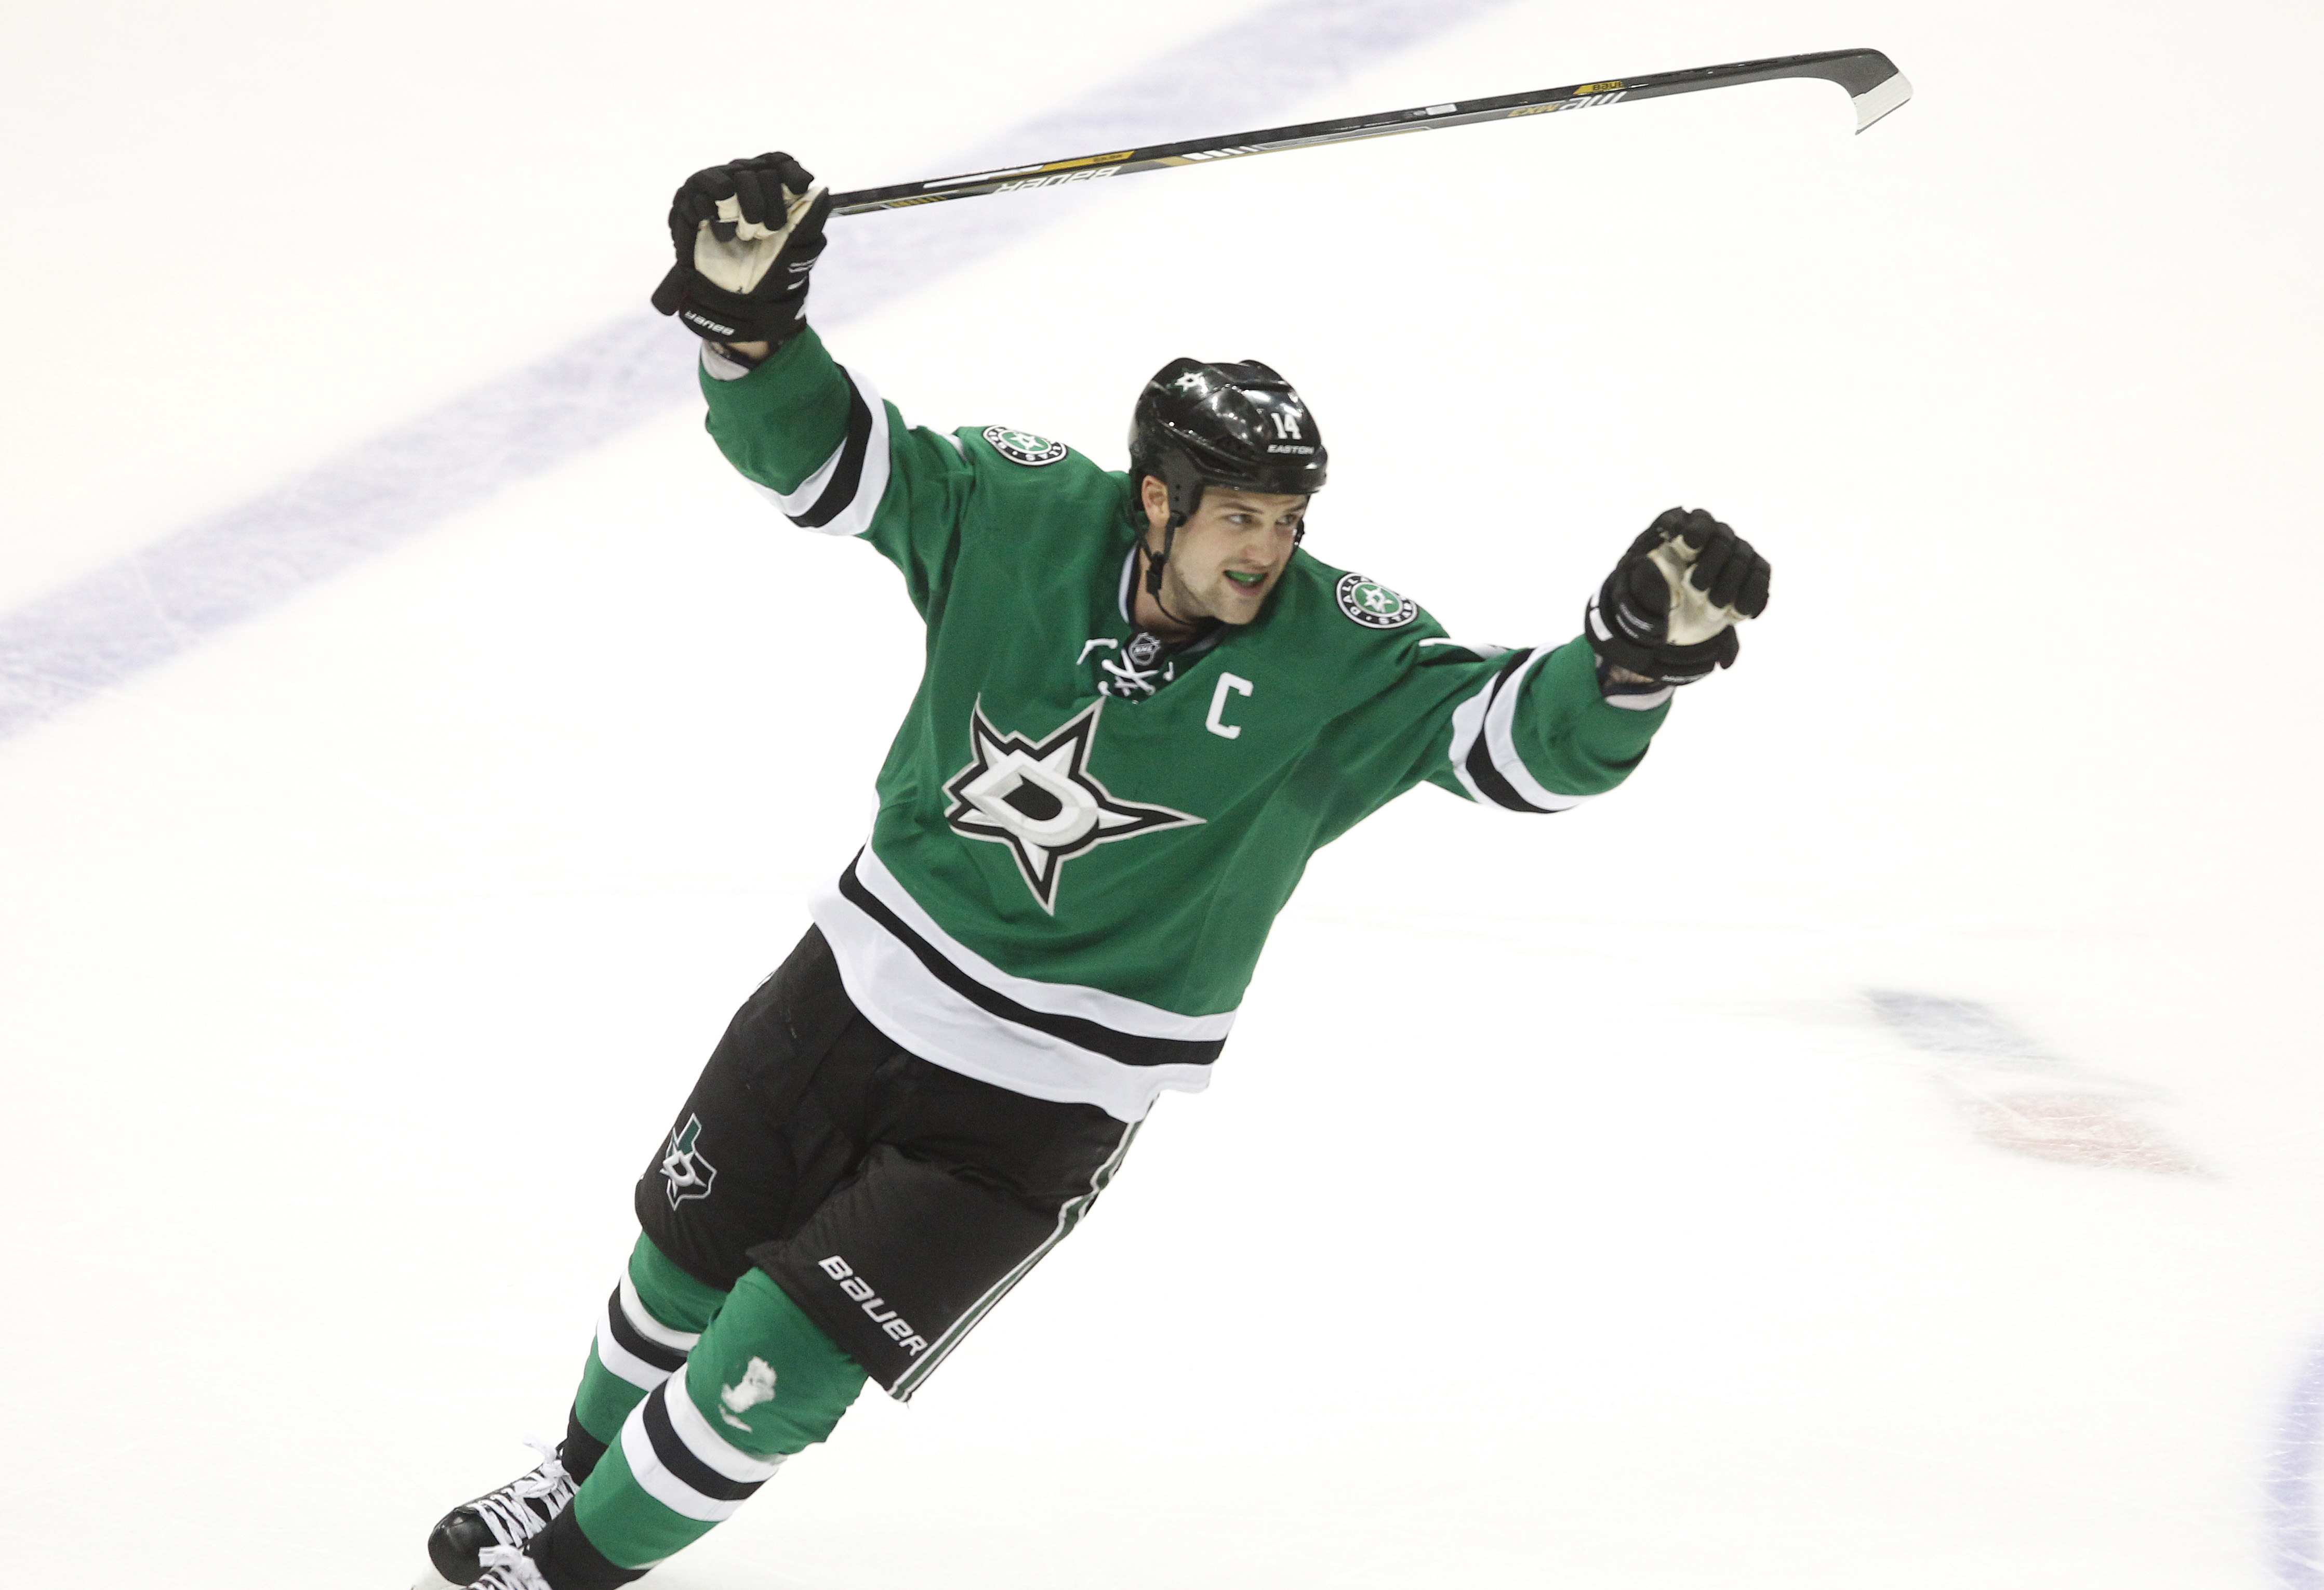 FILE - In this March 29, 2016, file photo, Dallas Stars left wing Jamie Benn celebrates teammate Patrick Sharp's goal against the Nashville Predators during the third period of an NHL hockey game in Dallas. Benn always seems uncomfortable in the spotlight